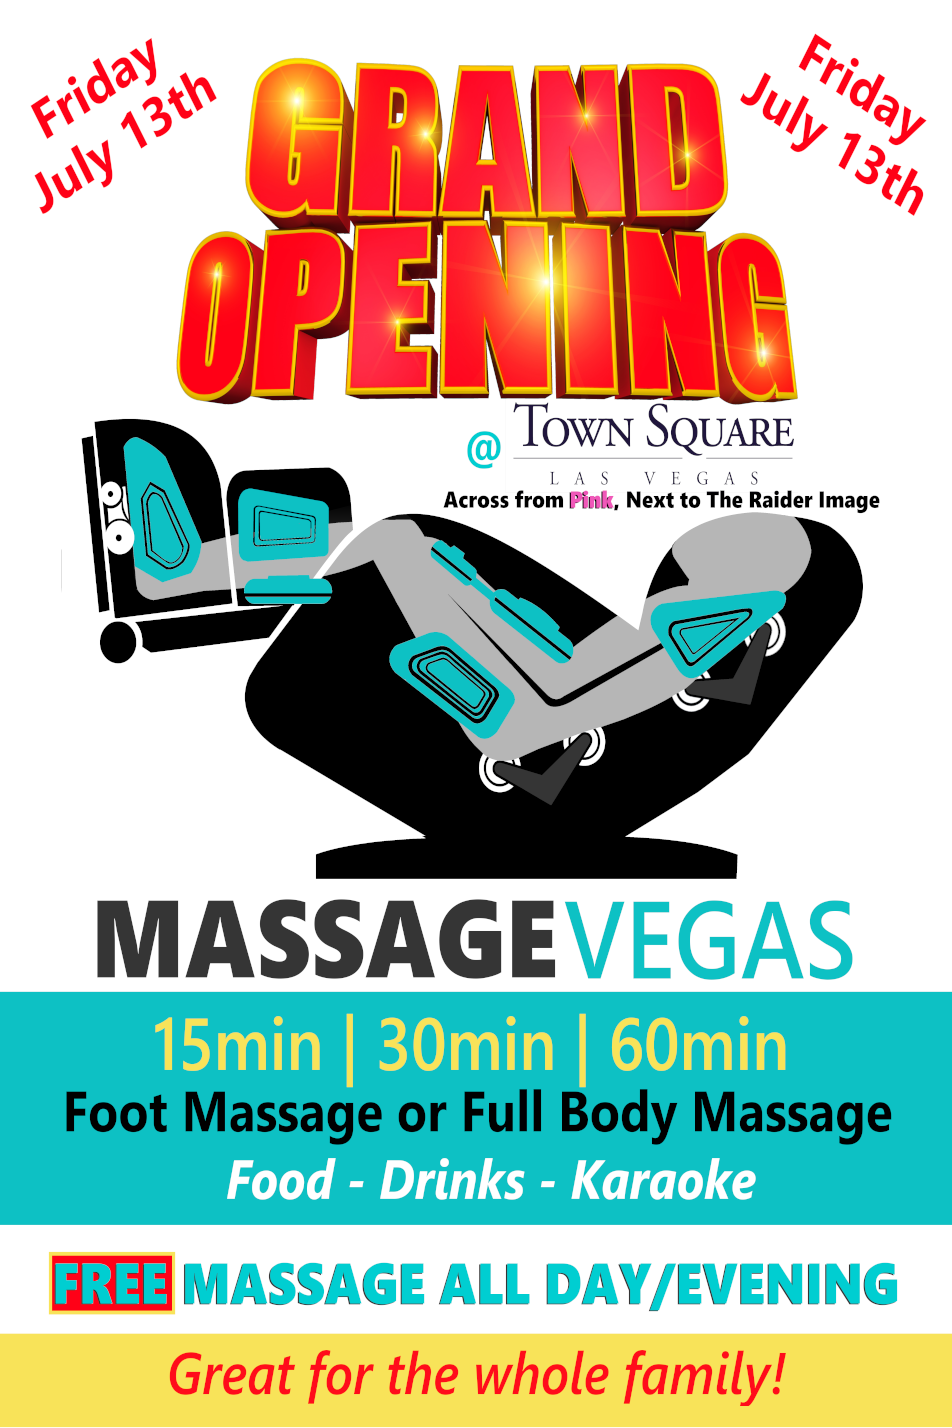 Massage Vegas @ Town Square